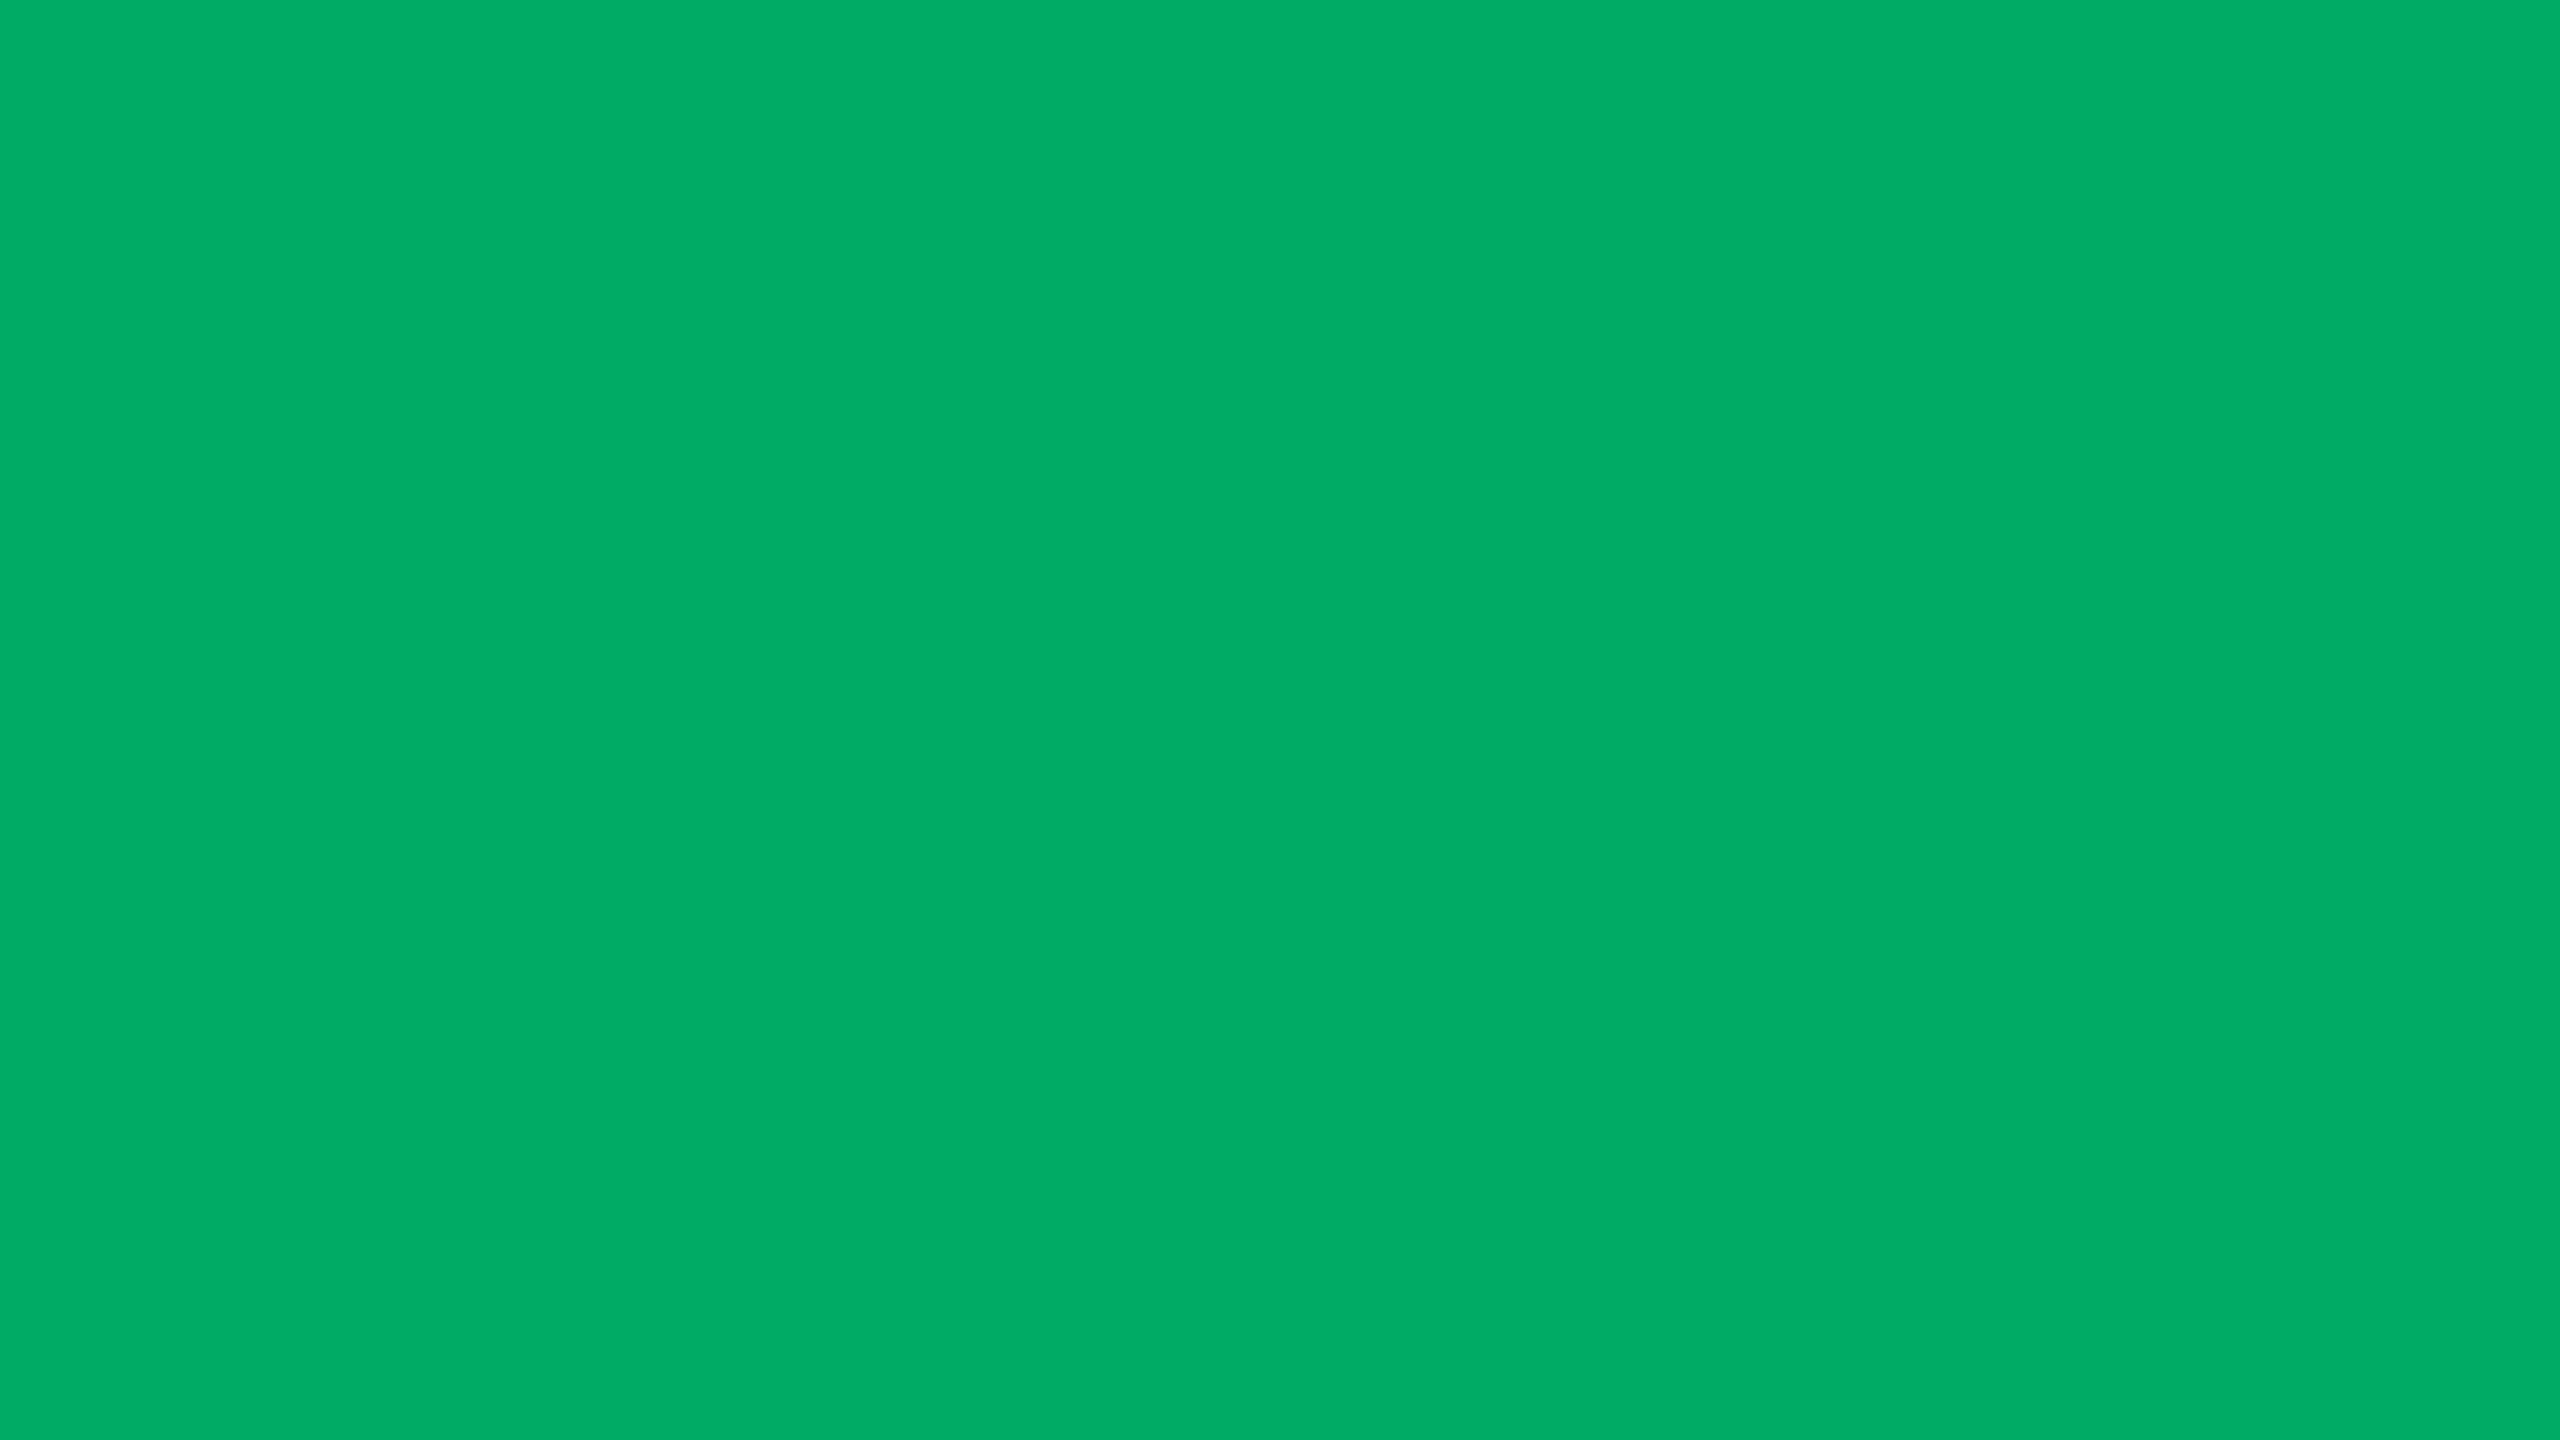 2560x1440 GO Green Solid Color Background